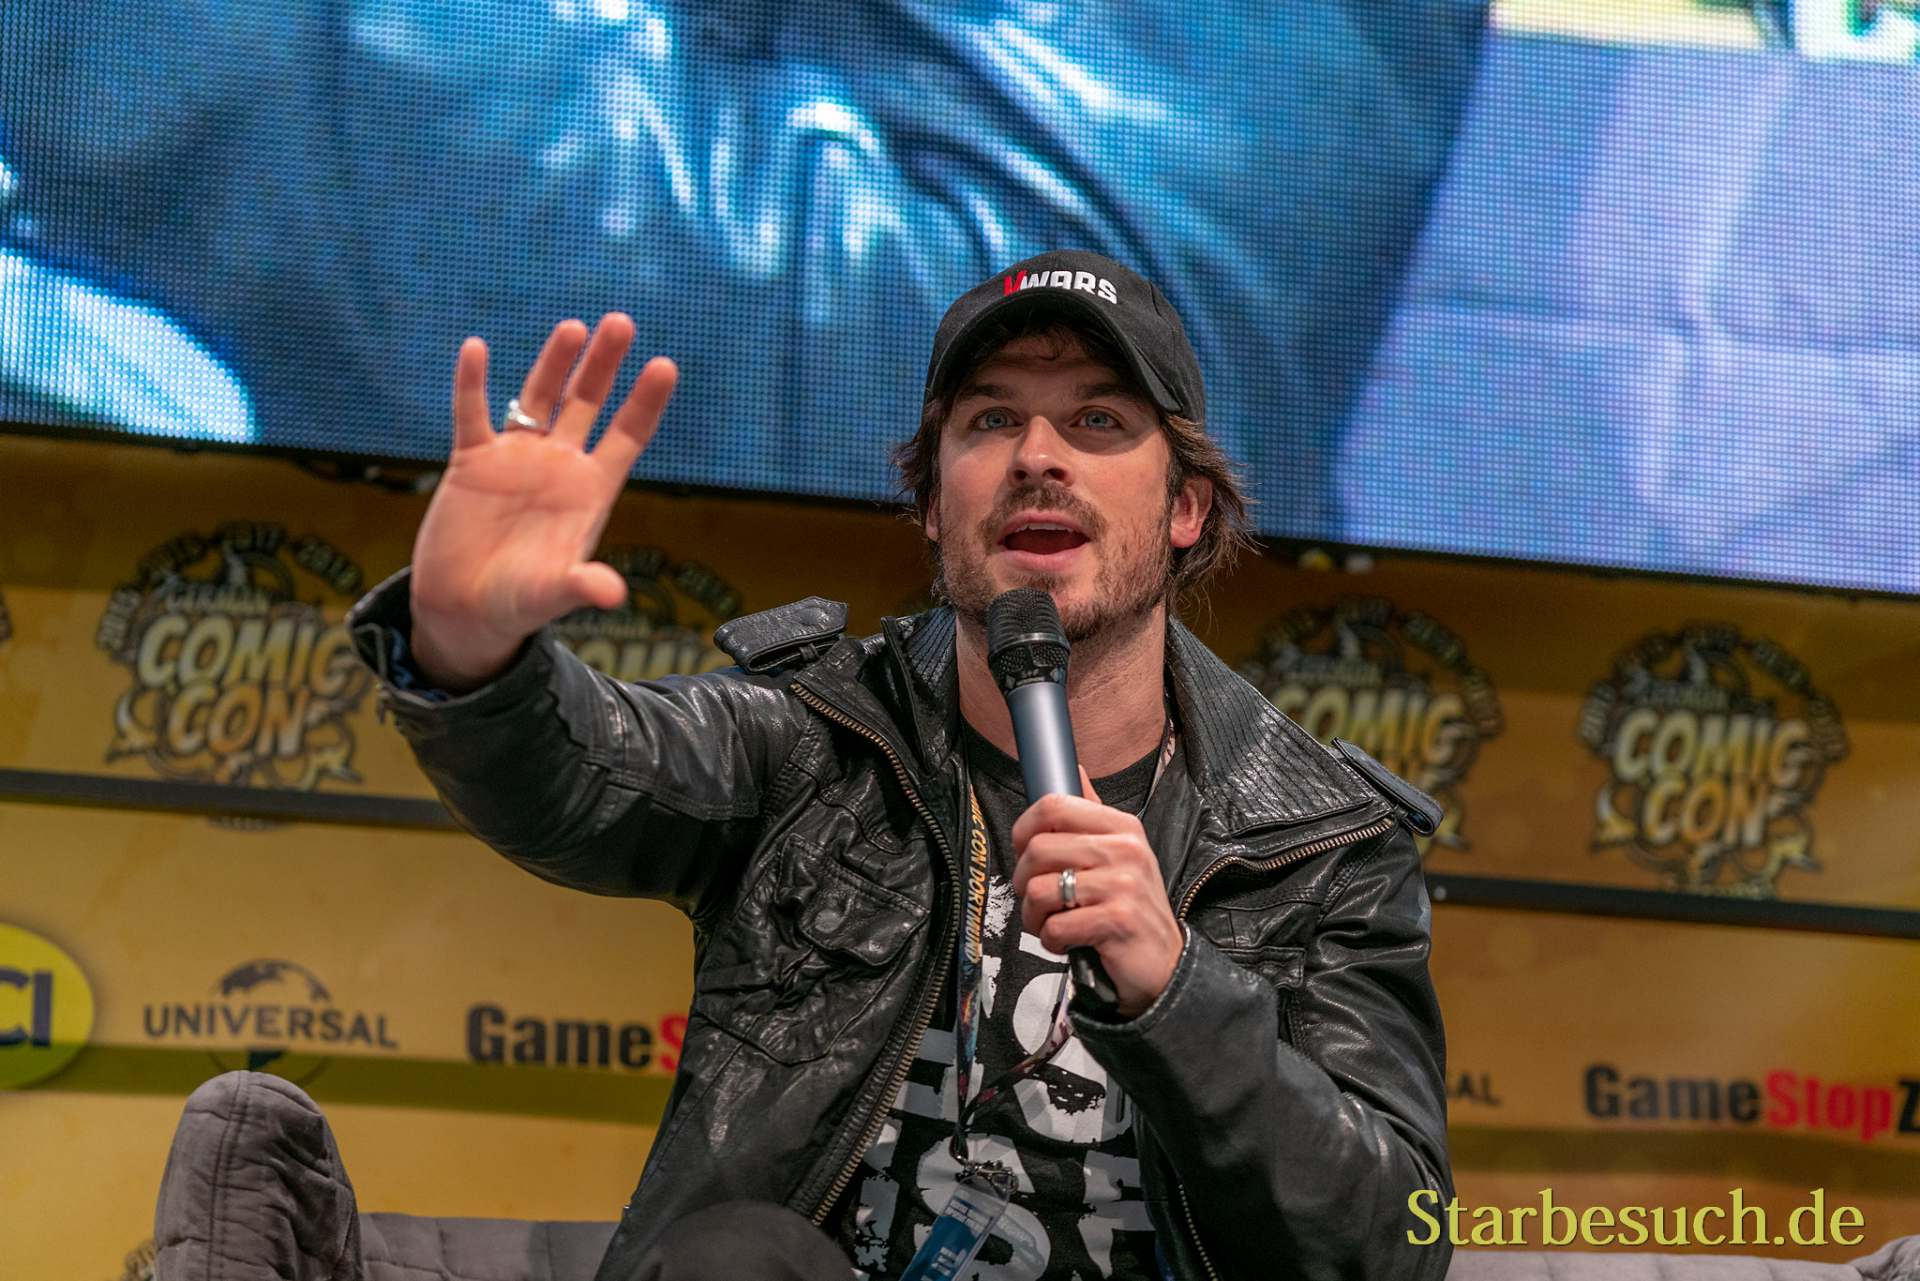 DORTMUND, GERMANY - December 8th 2019: Ian Somerhalder at German Comic Con Dortmund